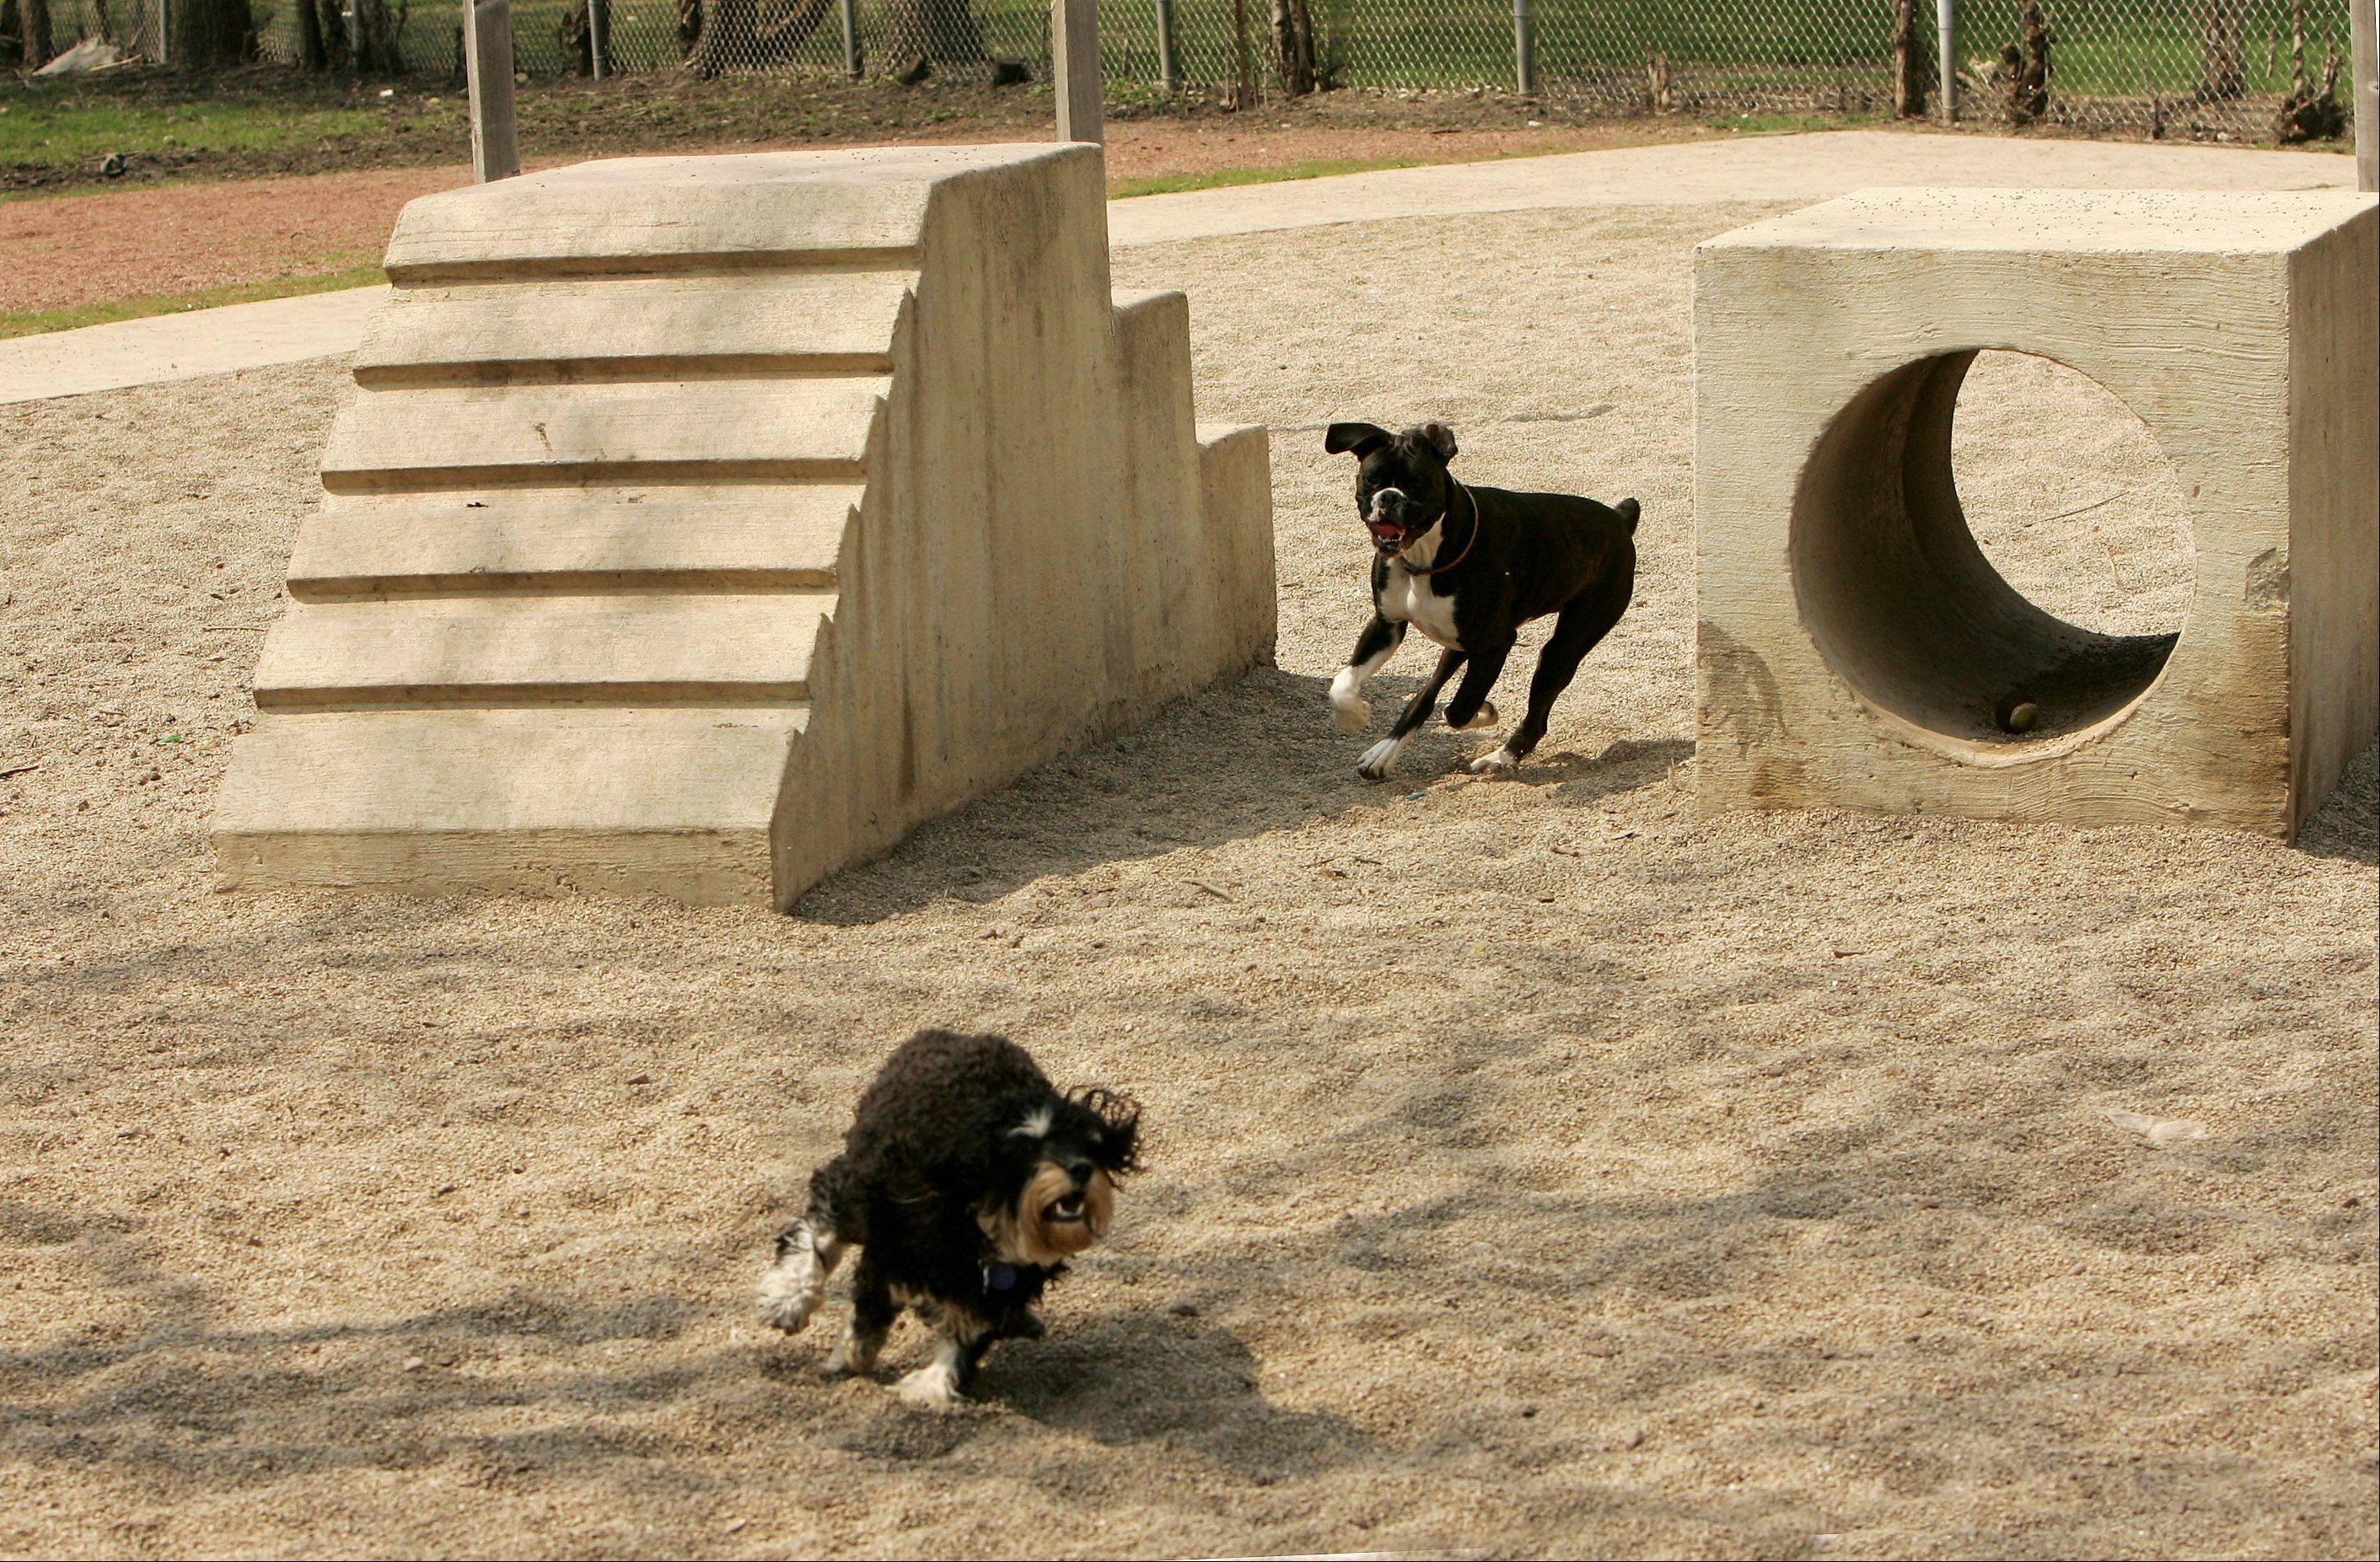 Buckeye, a boxer, chases Cosmo, a schnoodle, through the exercise equipment at the Jaycee Memorial Park dog exercise area in Deerfield. Dog owners would like the Arlington Heights Park District to add a dog park.